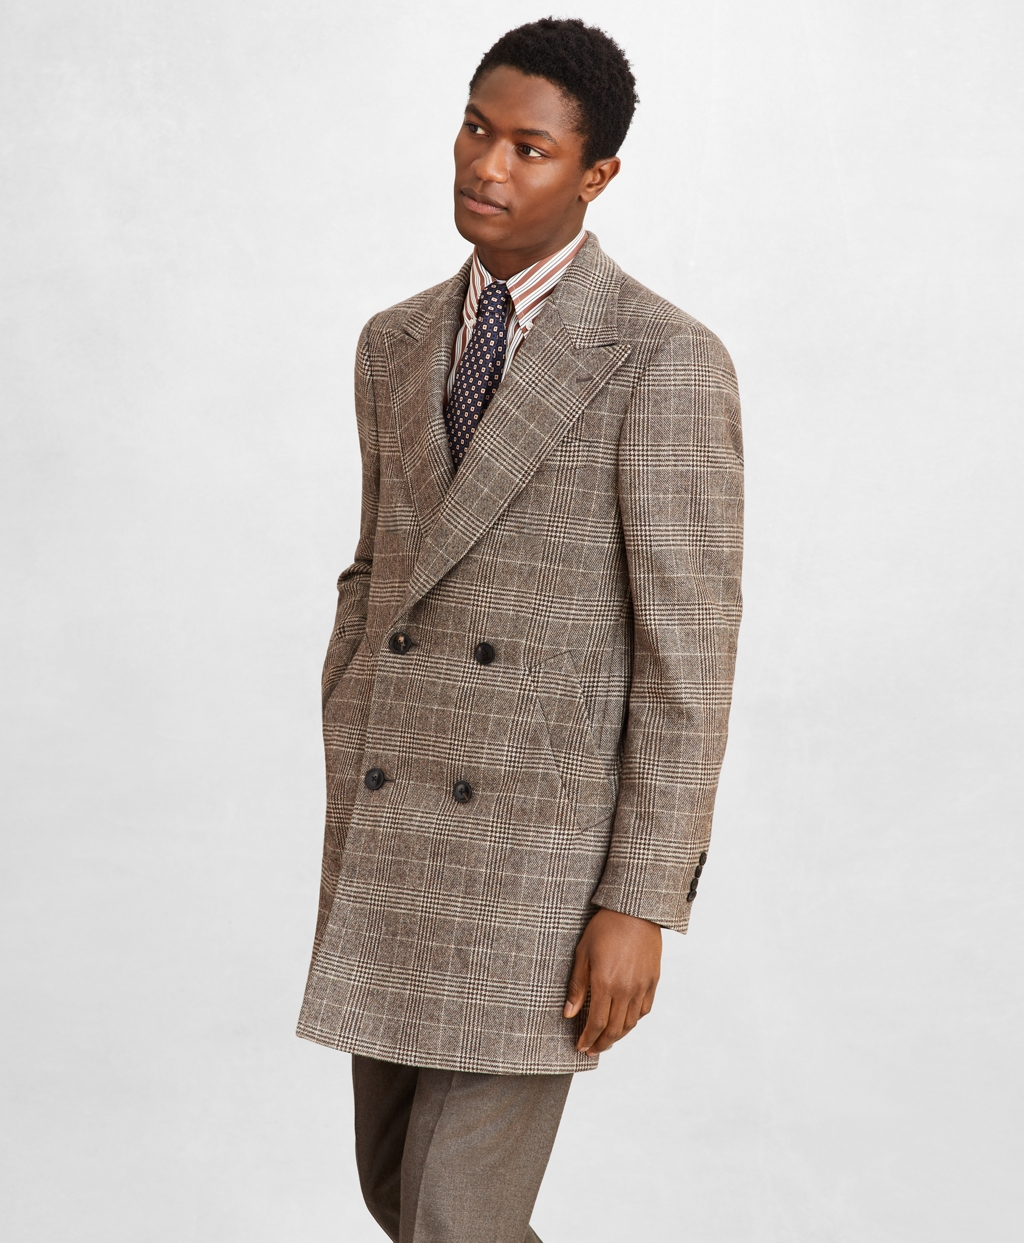 Men's Vintage Style Coats and Jackets Brooks Brothers Mens Golden Fleece Double-Breasted Plaid Topcoat $1,273.50 AT vintagedancer.com